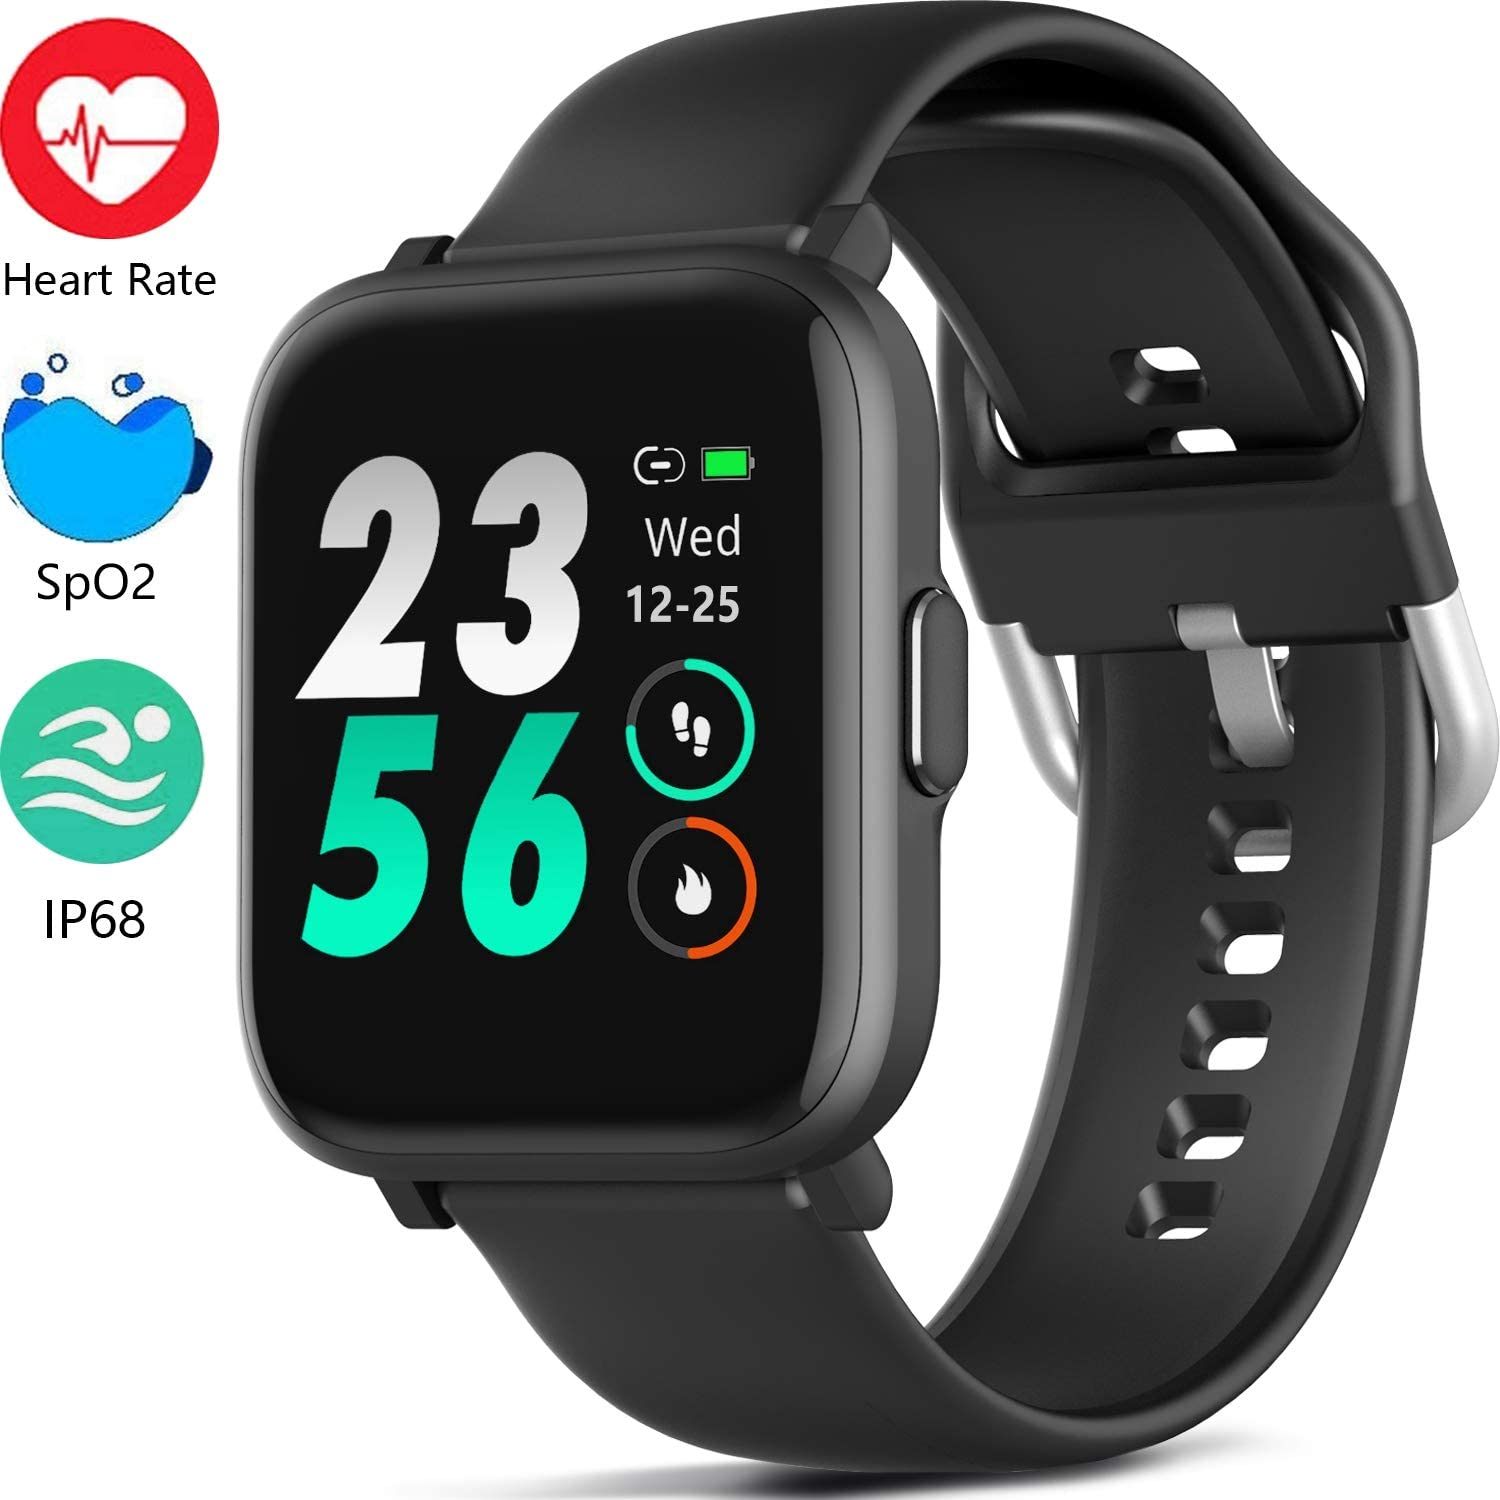 MorePro 18 Sports Mode Smart Watch with Music Control, DIY Screen Fitness Tracker with Blood Oxygen Heart Rate Monitor, Sleep Tracker with Pedometer Step Calories Counter for Men Women